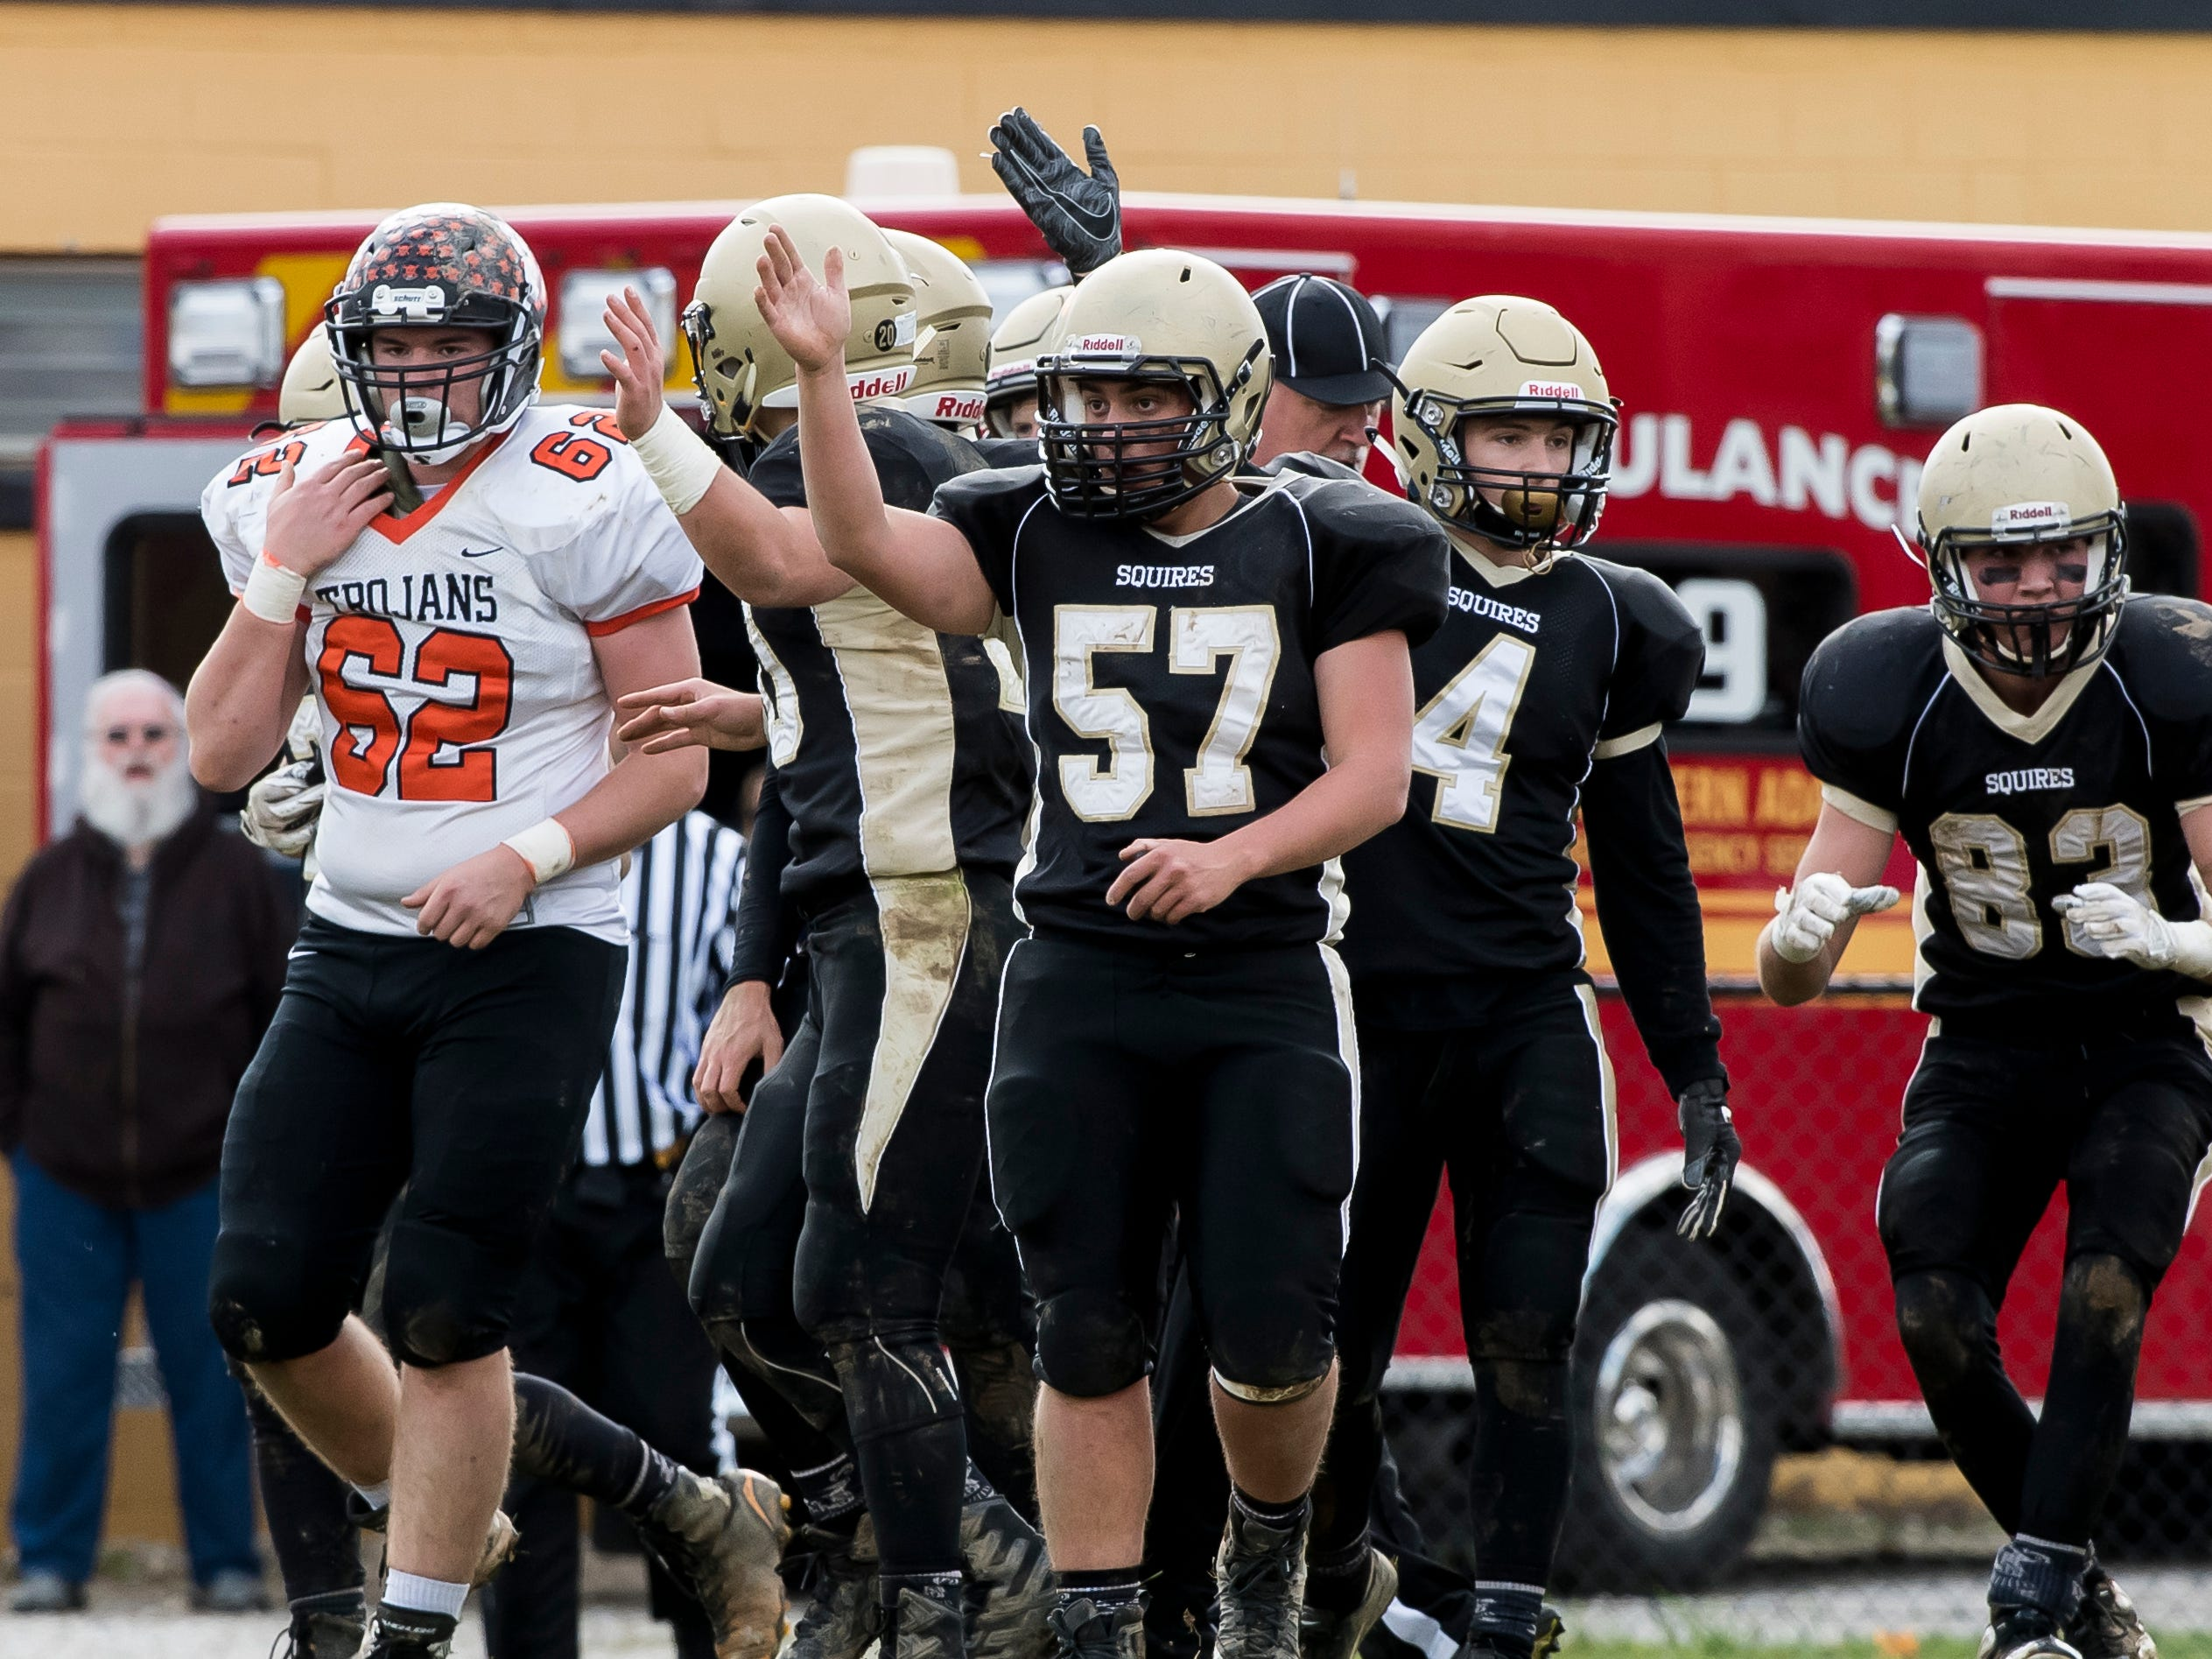 Delone Catholic's Bryce Leonard (57) and Colin Gebhart (4) react after recovering an Upper Dauphin fumble during a District III Class 2A semifinal game on Saturday, November 3, 2018. The Squires won 48-23.